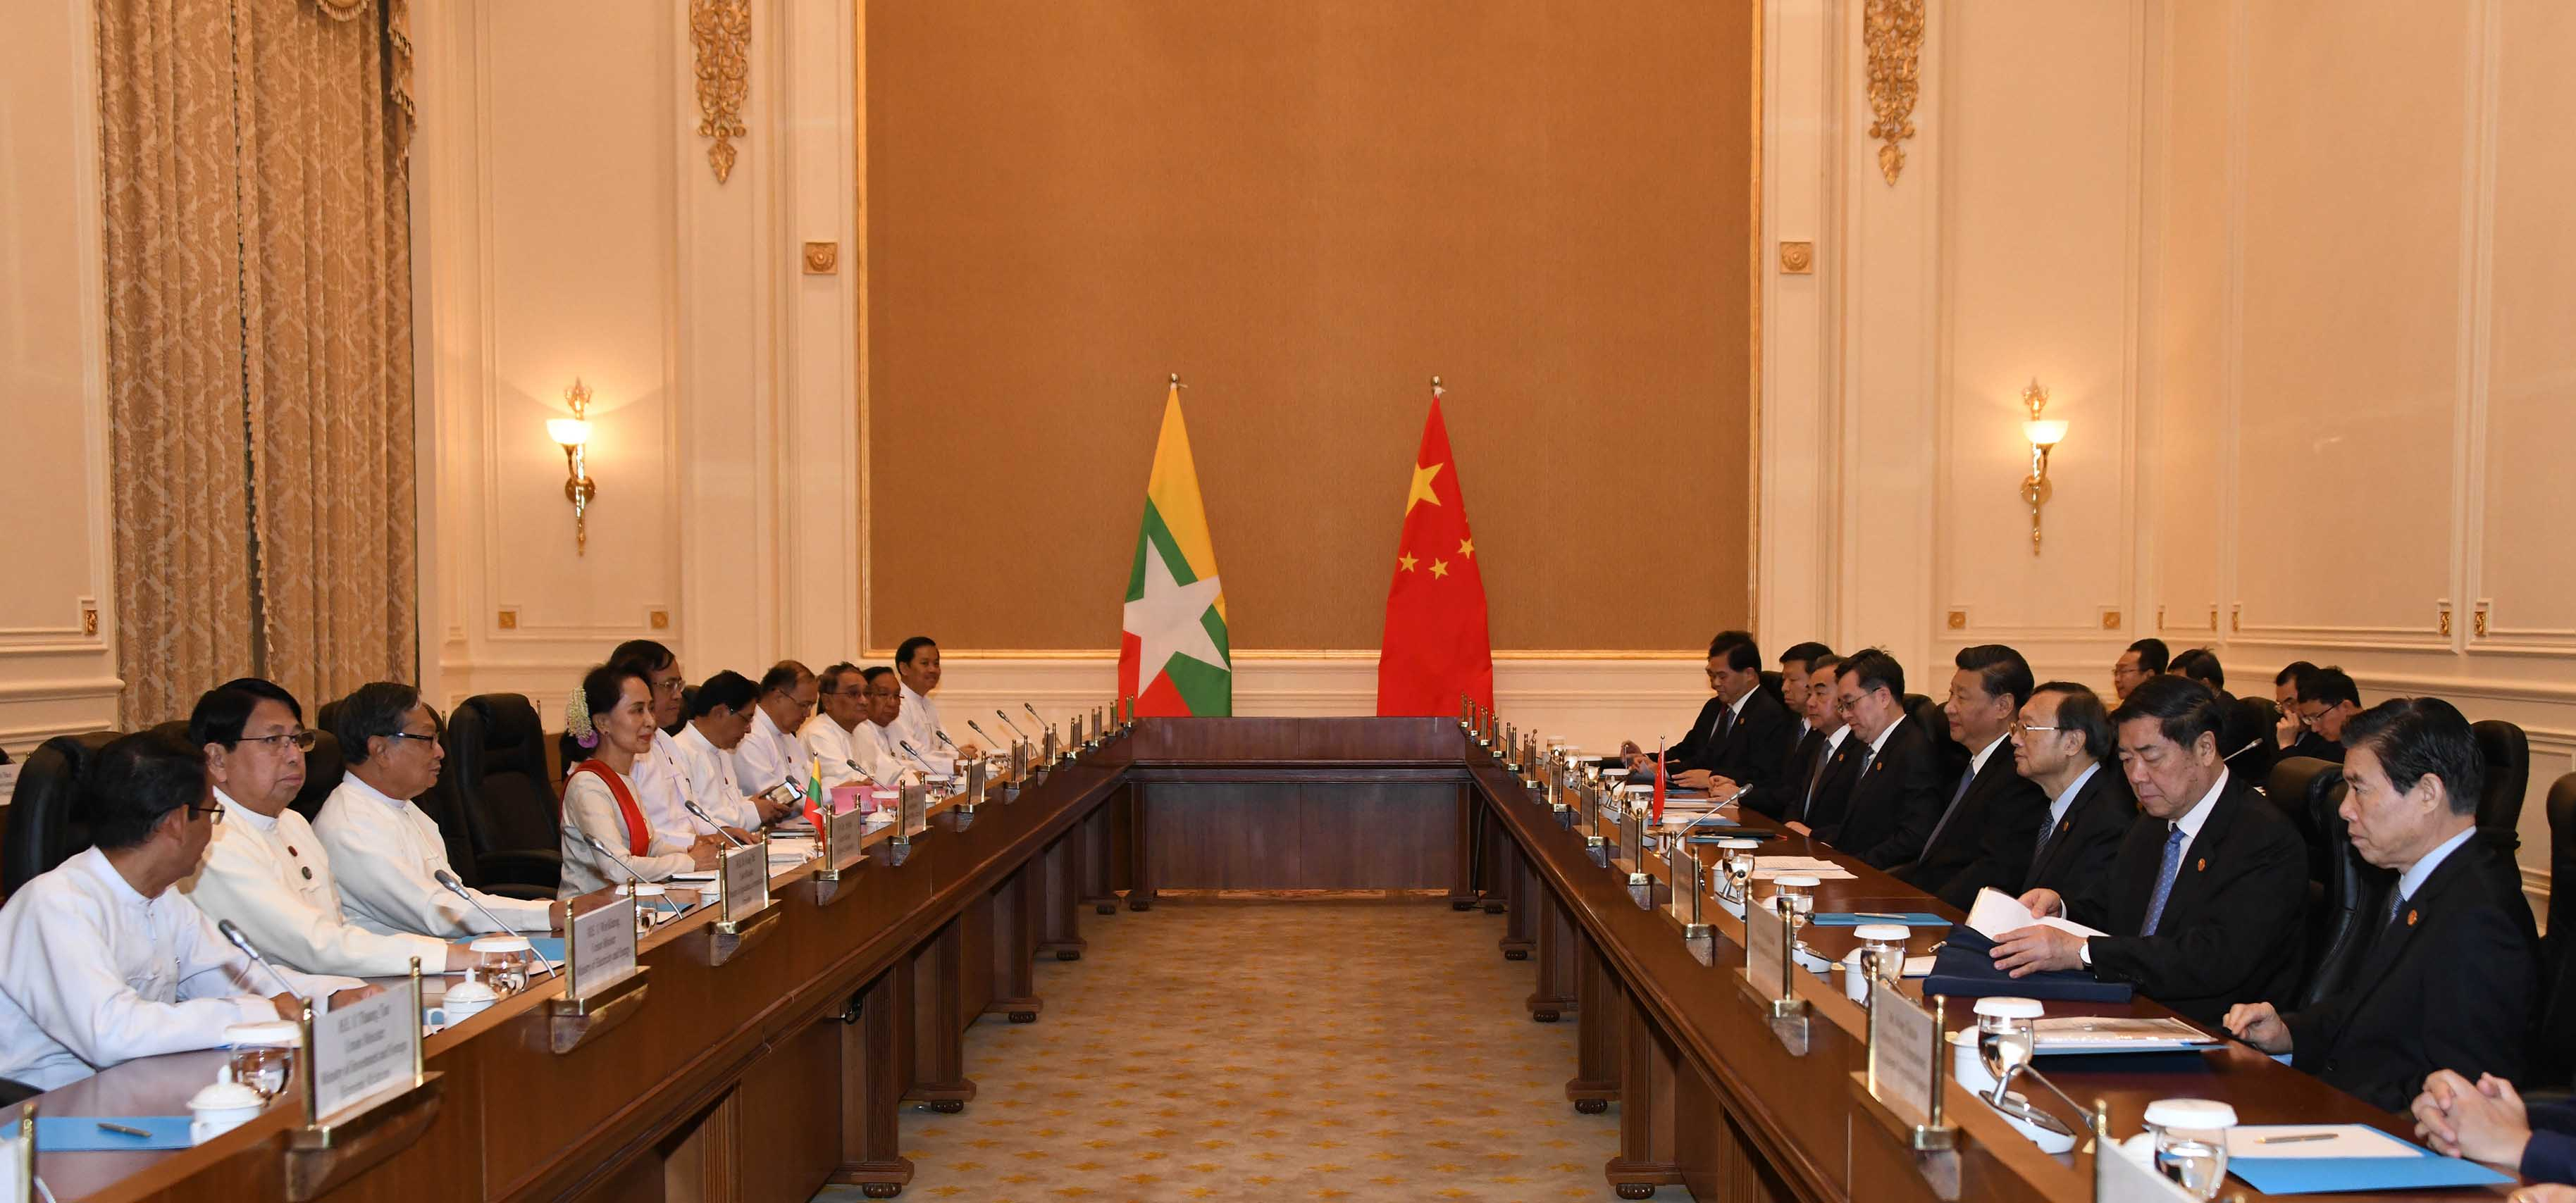 State Counsellor Daw Aung San Suu Kyi and President of the People's Republic of China Mr Xi Jinping holding the Myanmar-China bilateral talk. Photo: MNA